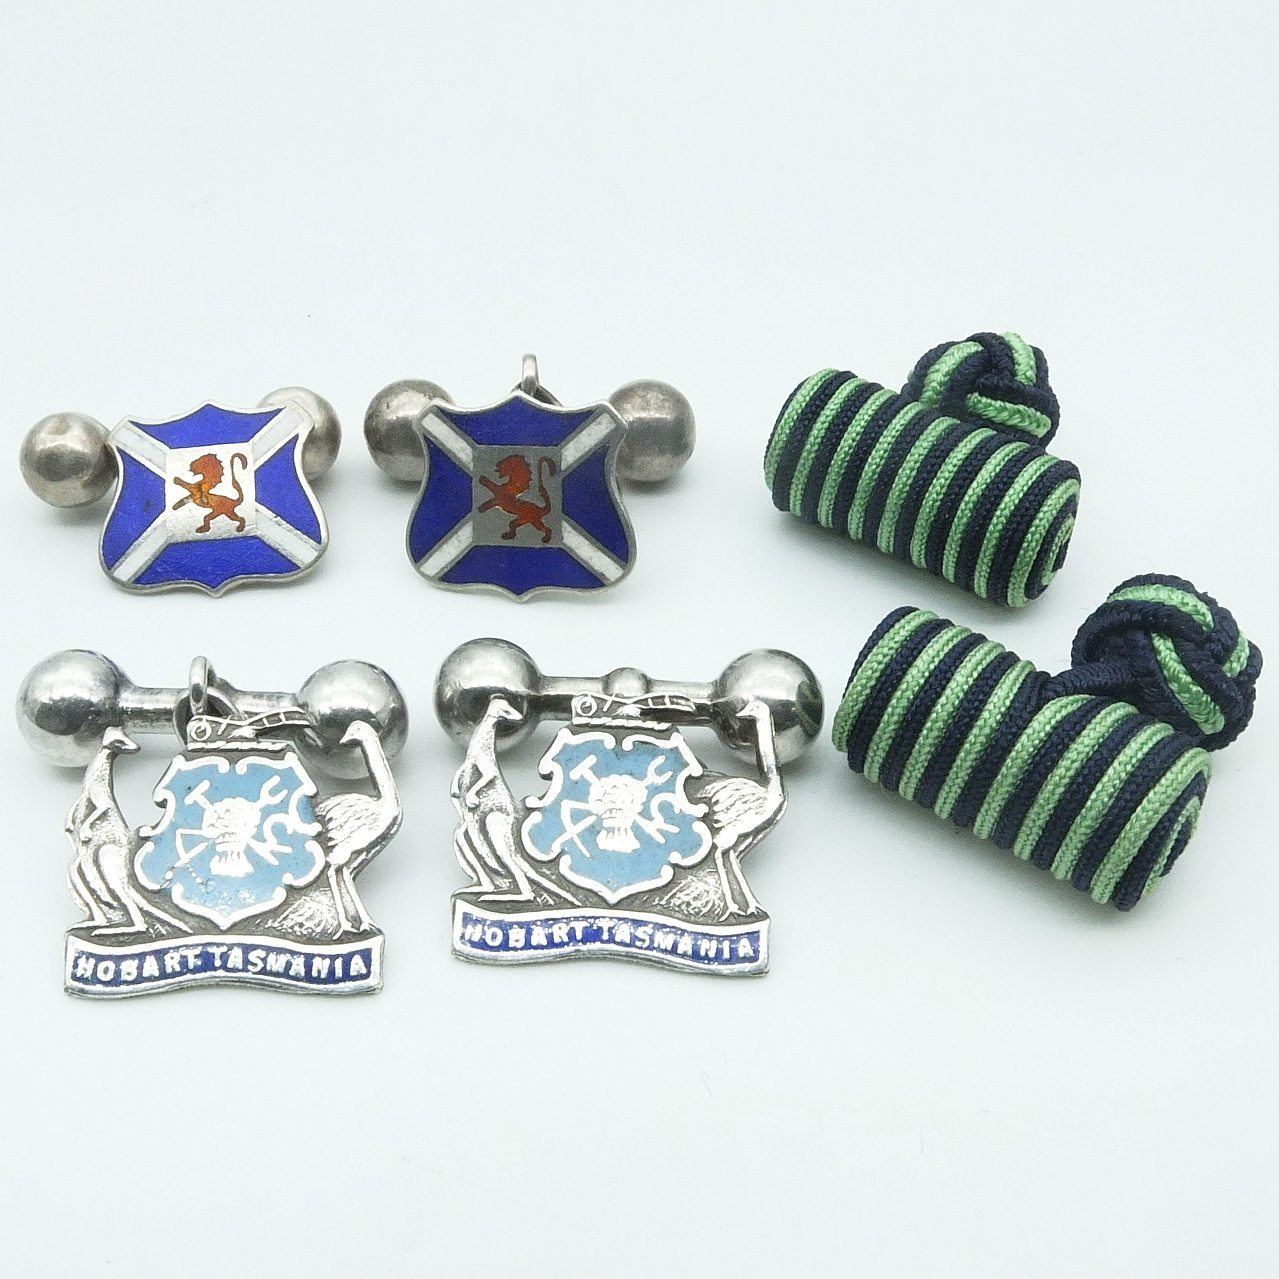 'Two Pairs of Crested Sterling Silver and Enamel Cufflinks and Another'